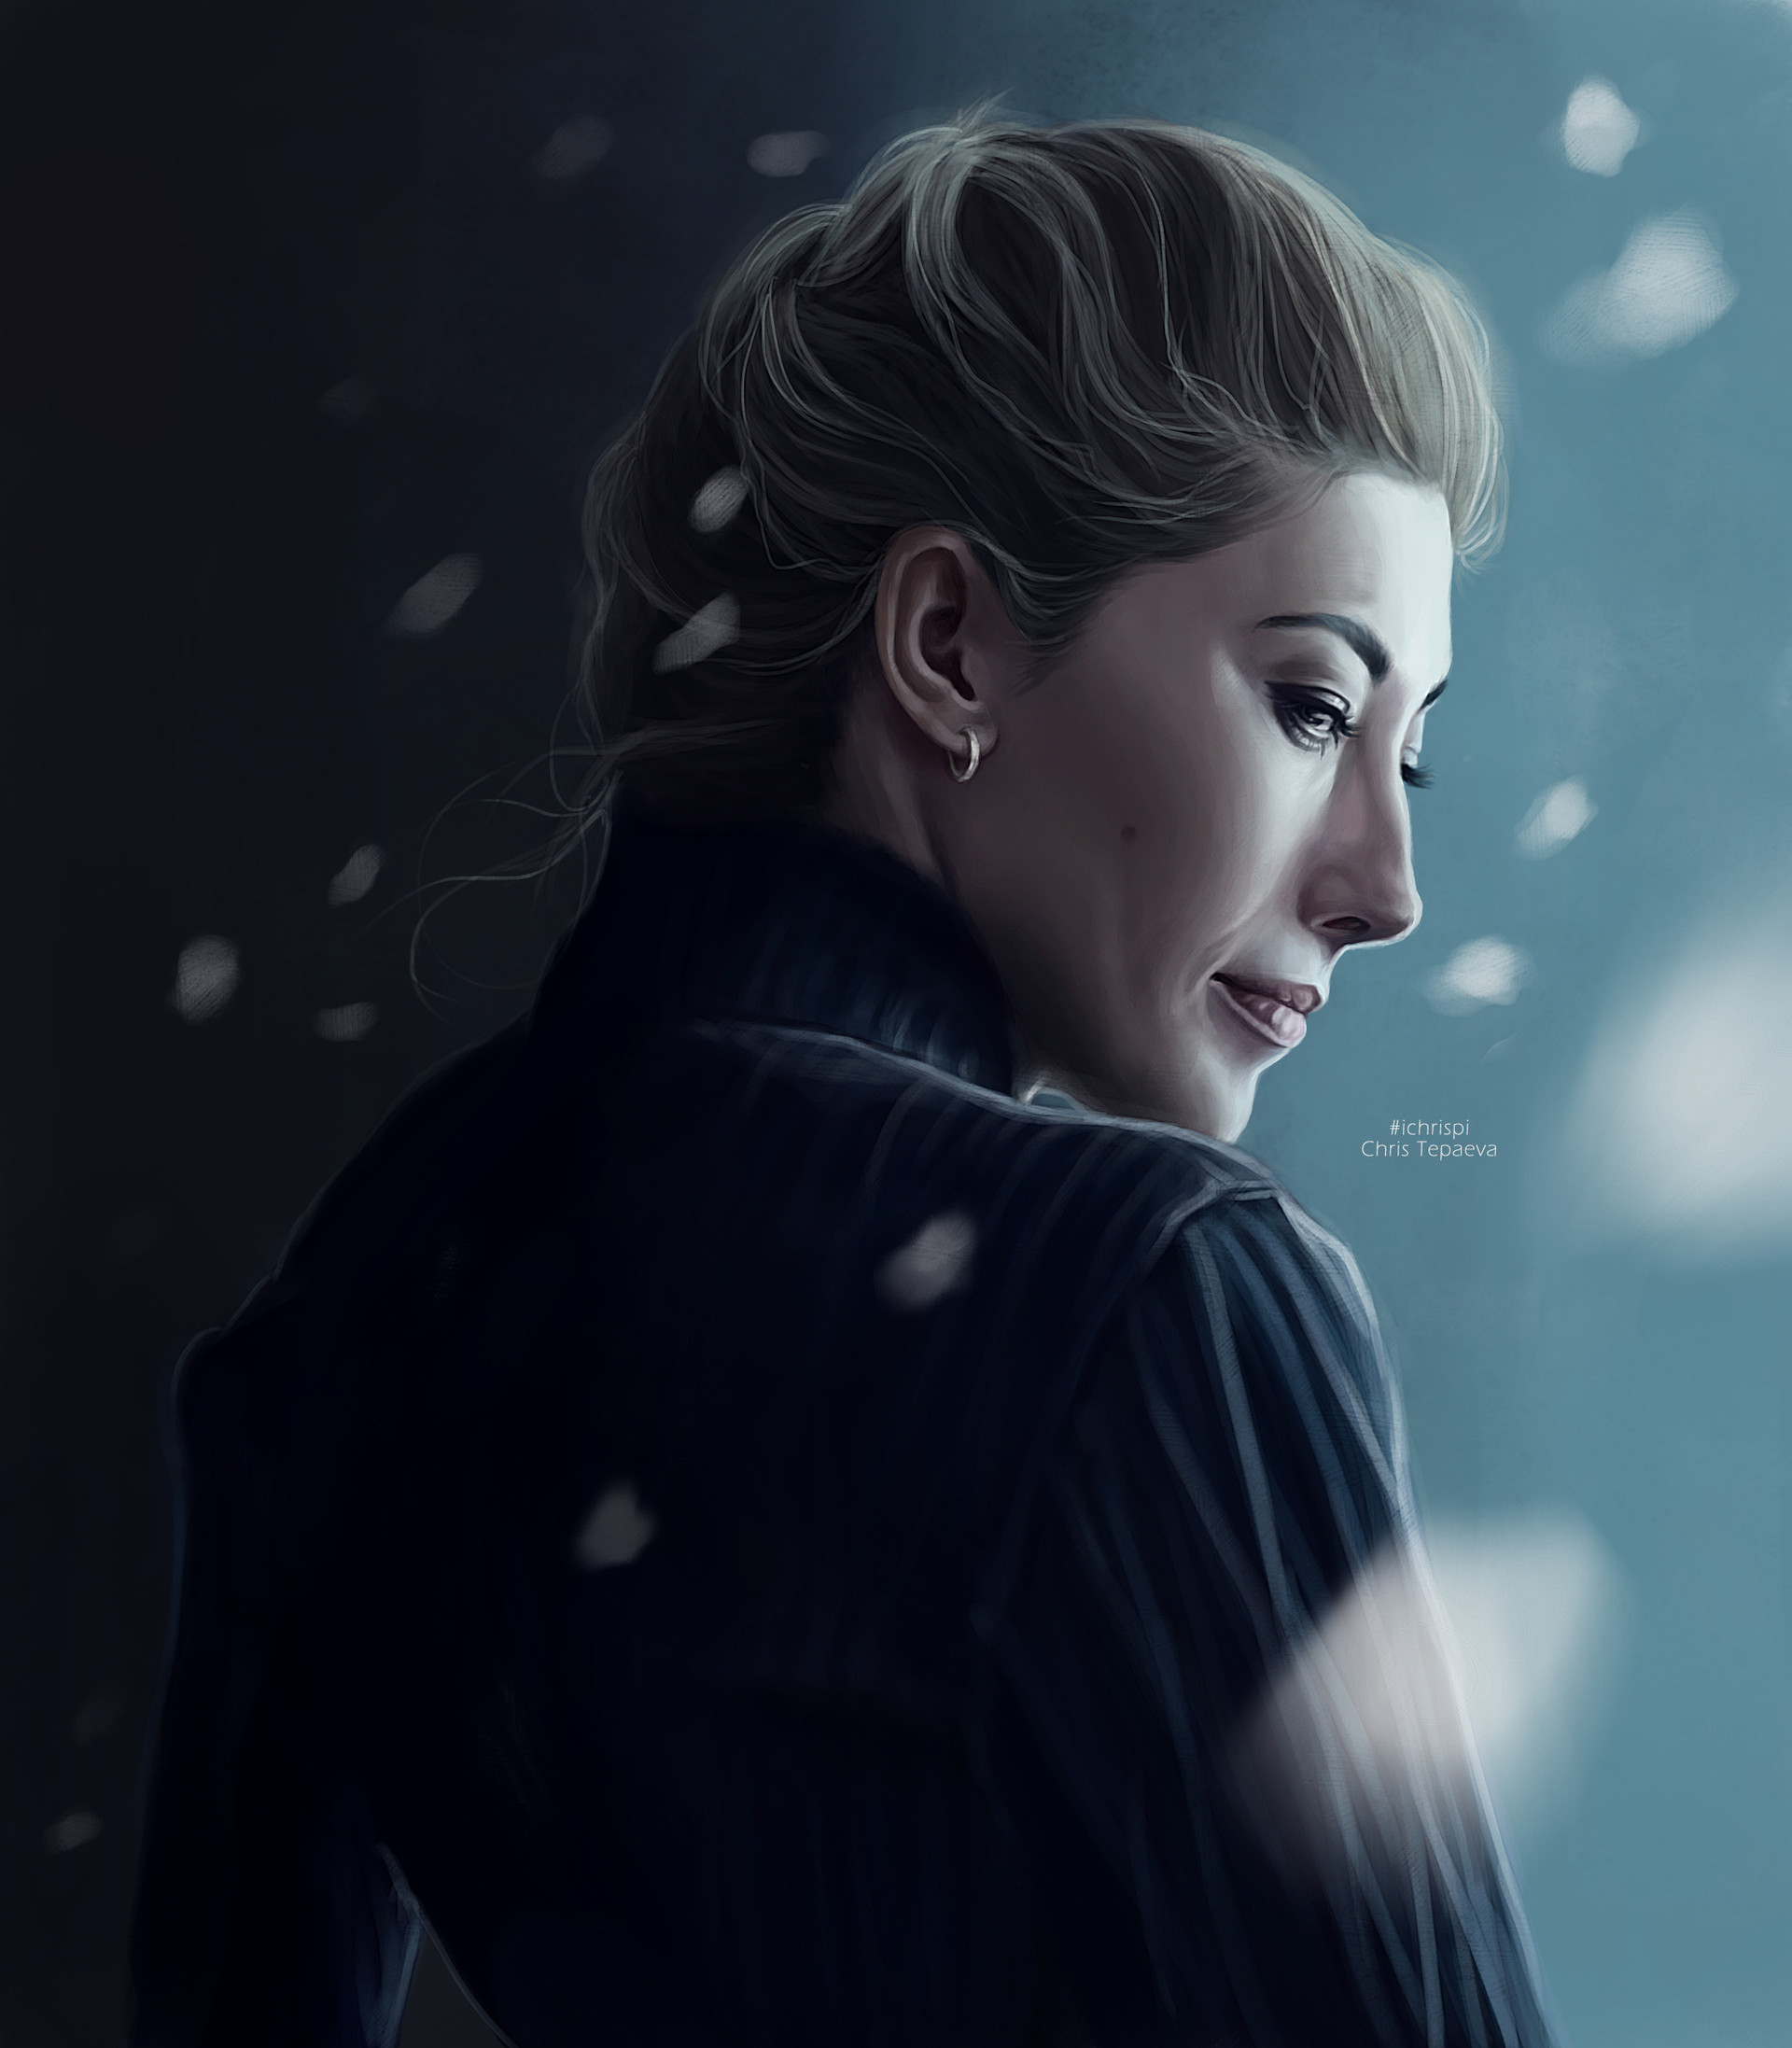 Discussion on this topic: Megan Ward, dichen-lachman/